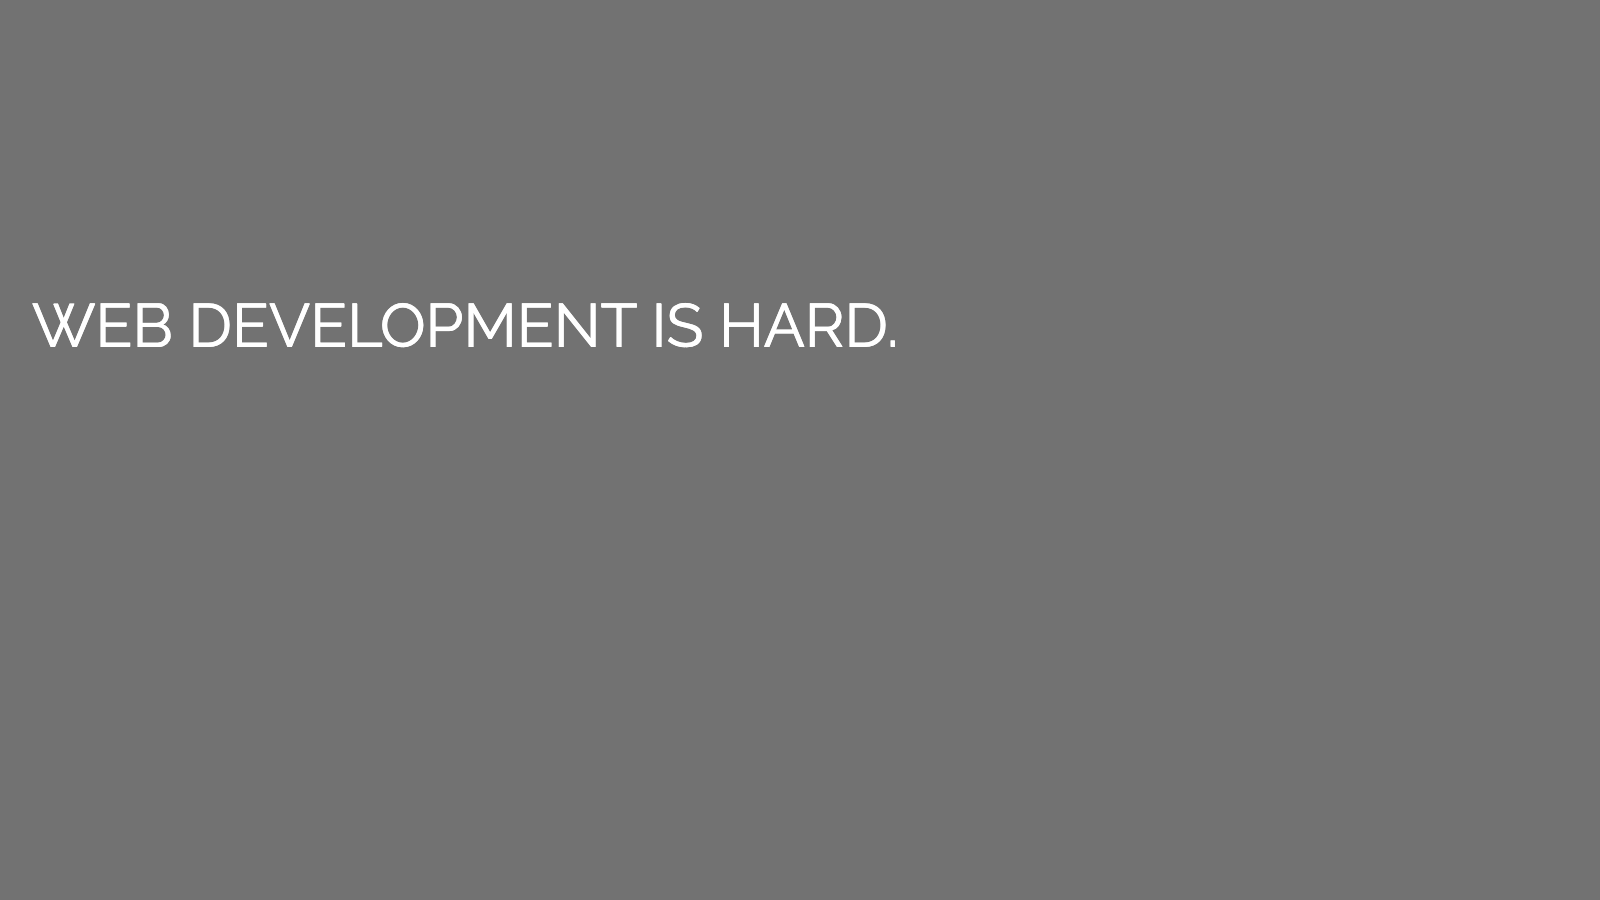 Slide content, Web development is hard